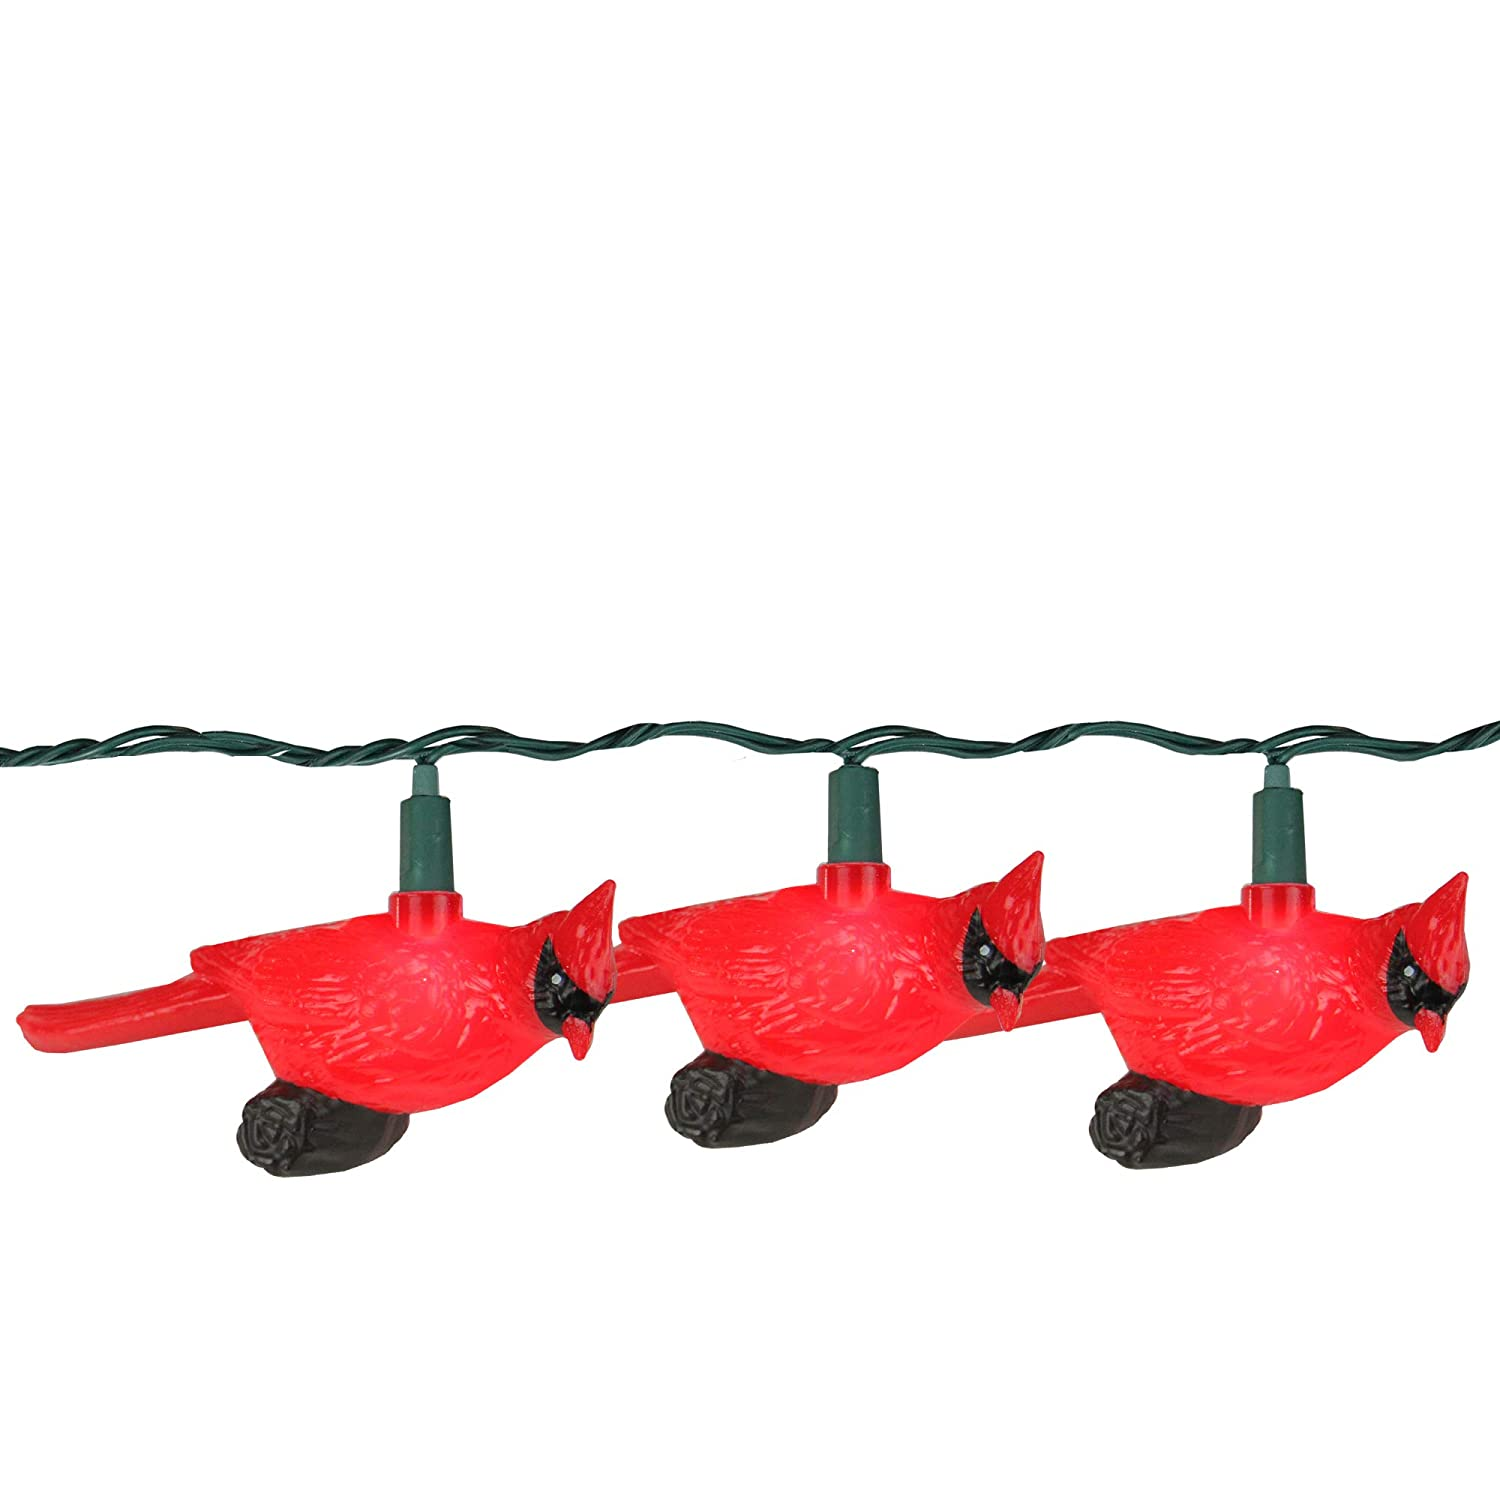 Set of 10 Festive Red Cardinal Bird Novelty Christmas Lights Green Wire